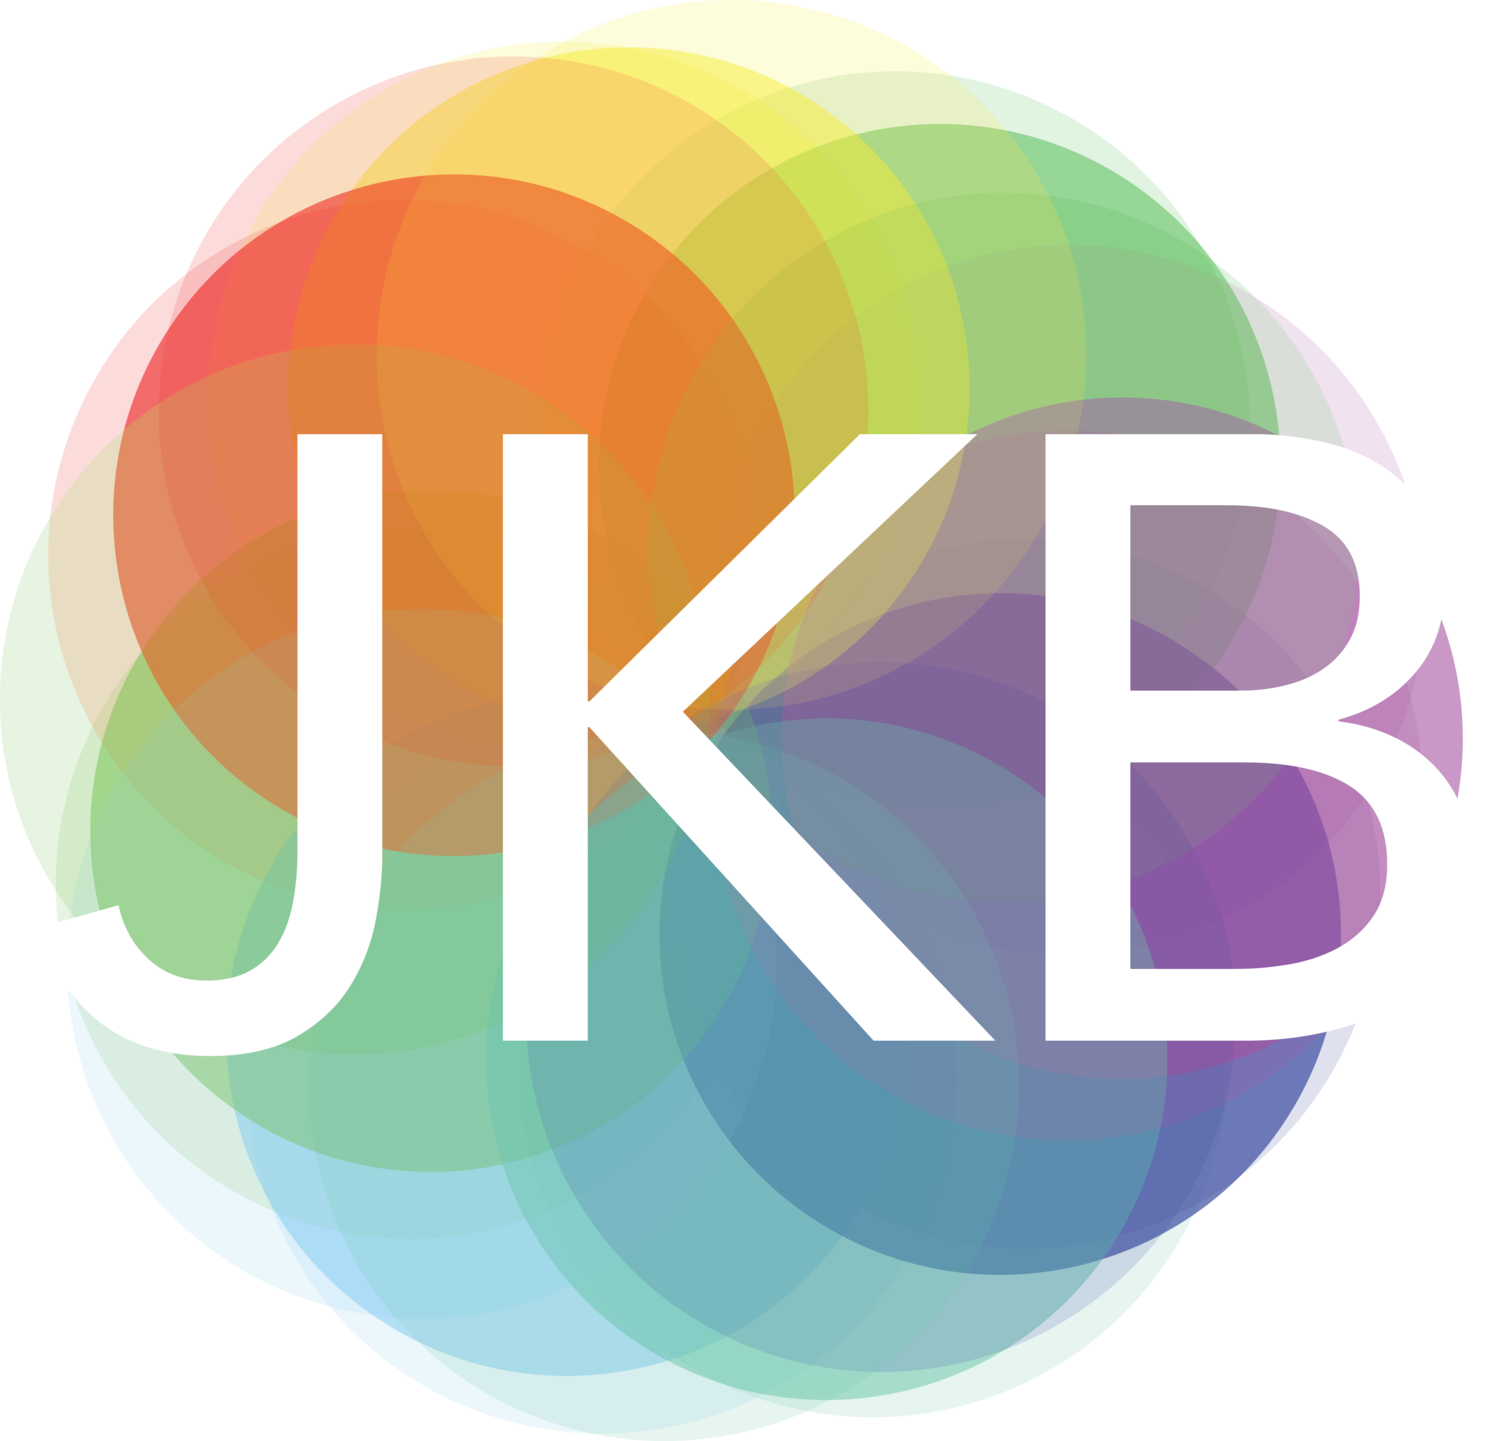 Work Jkb Creative